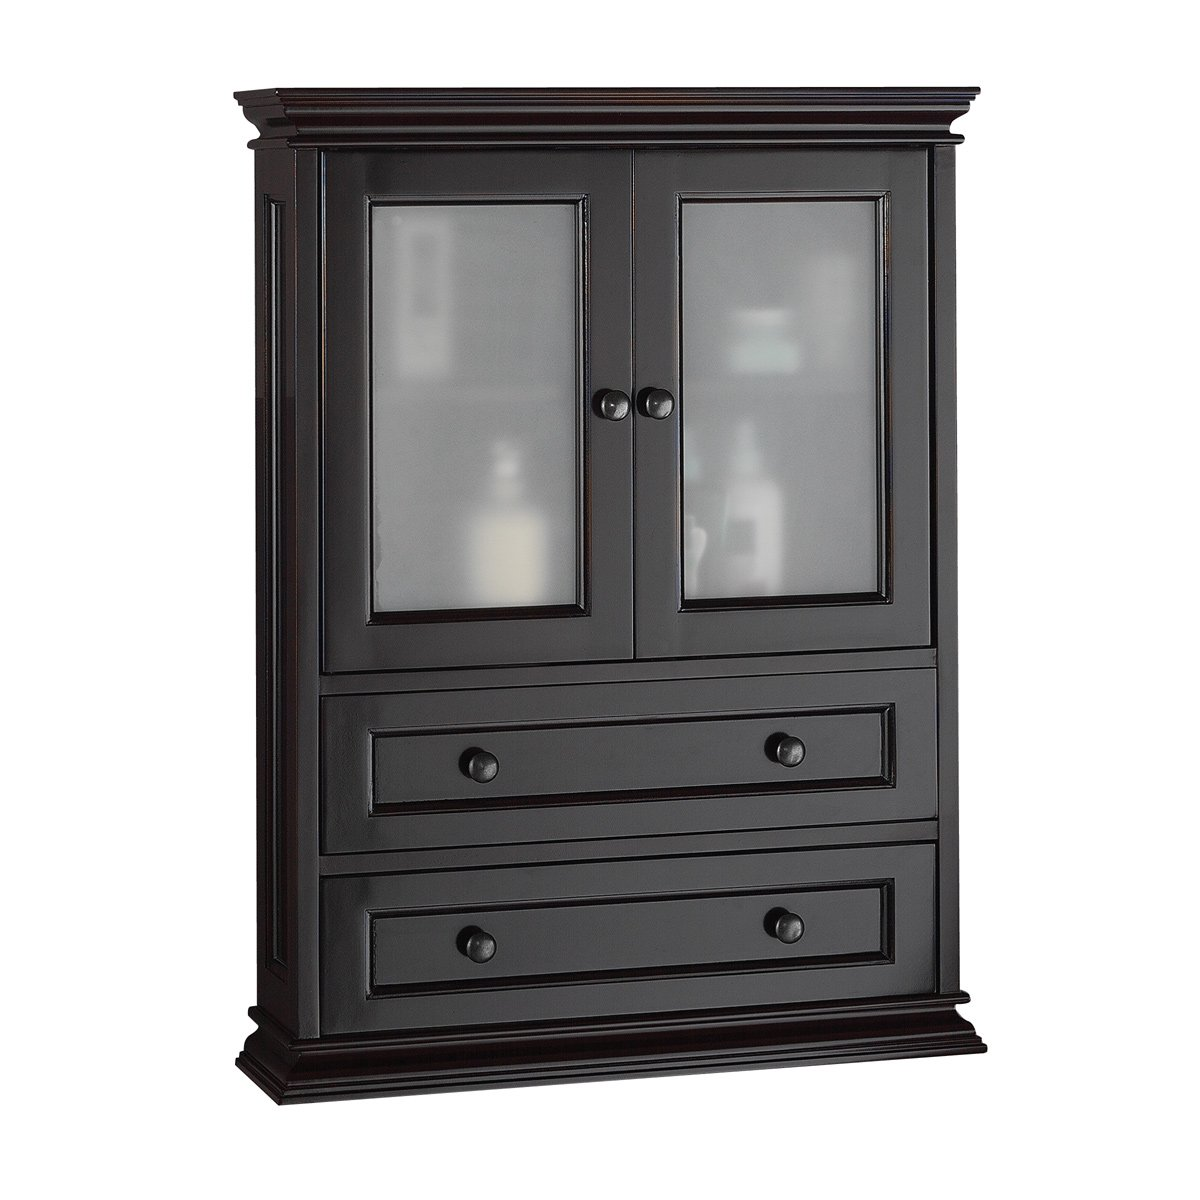 cabinet floor espresso wall ideas ameriwood saver astonishing berkshire foremost dark bathroom storage space